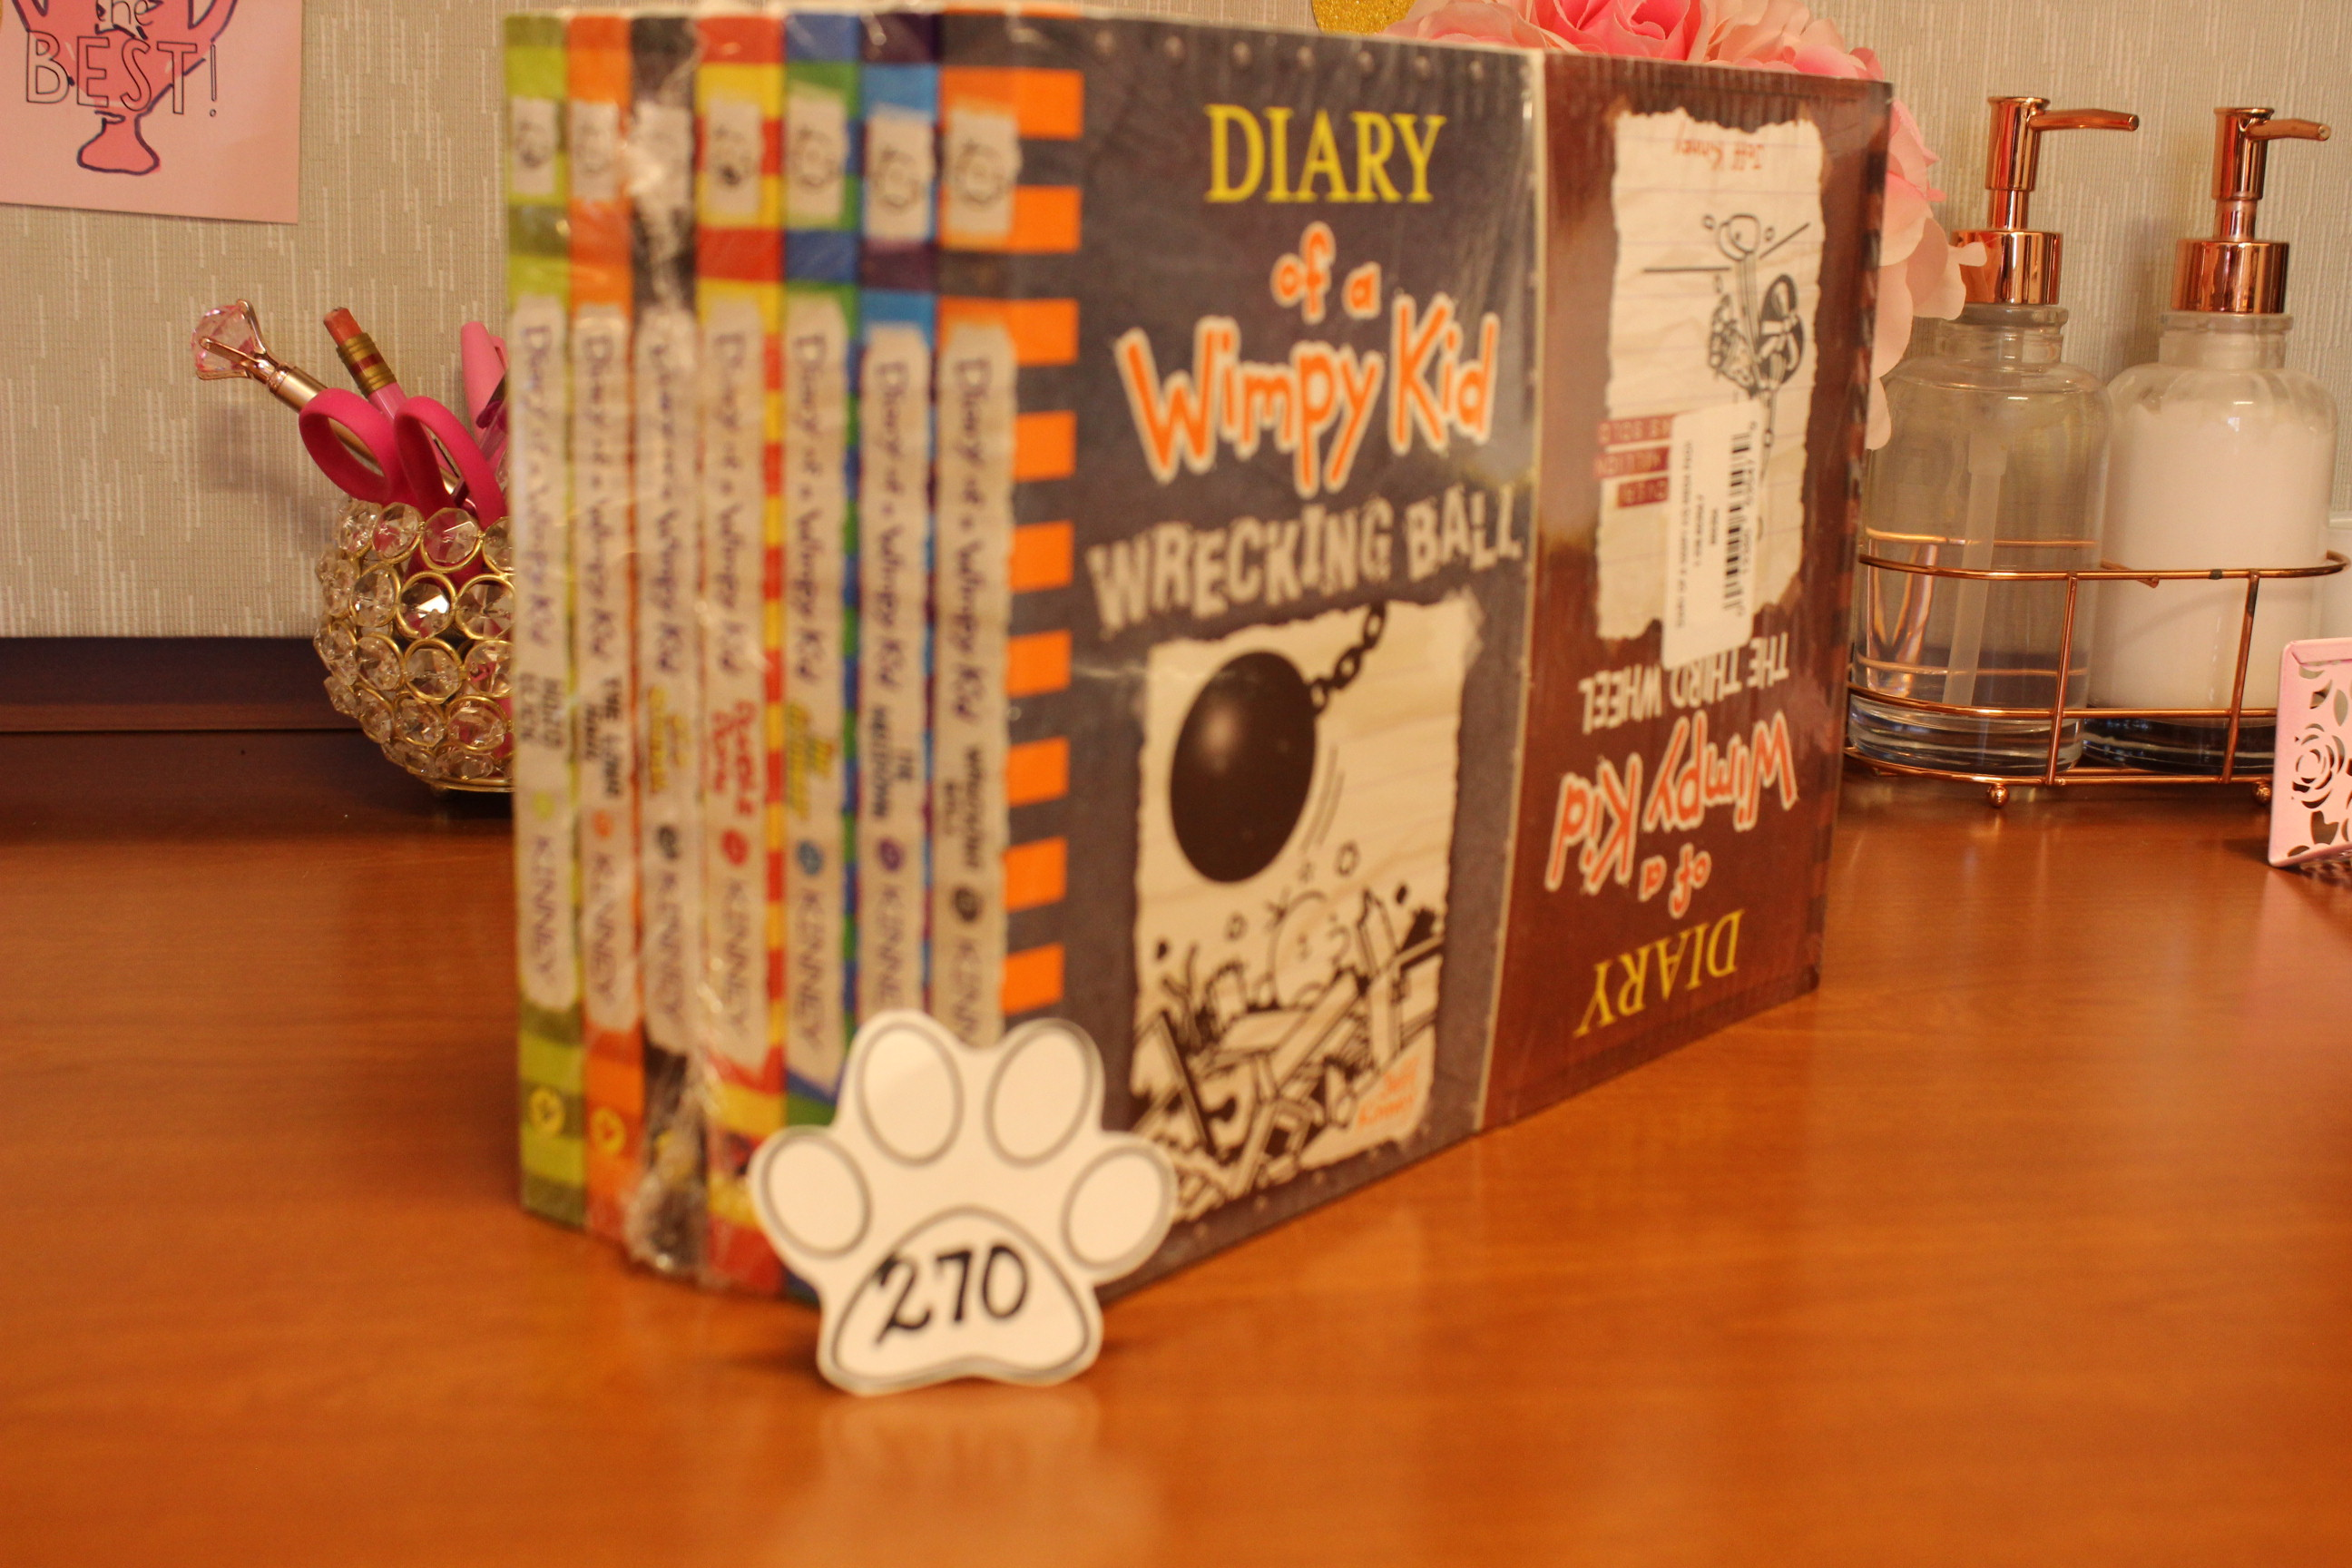 278 Paws Diary of Wimpy Kid Book Set